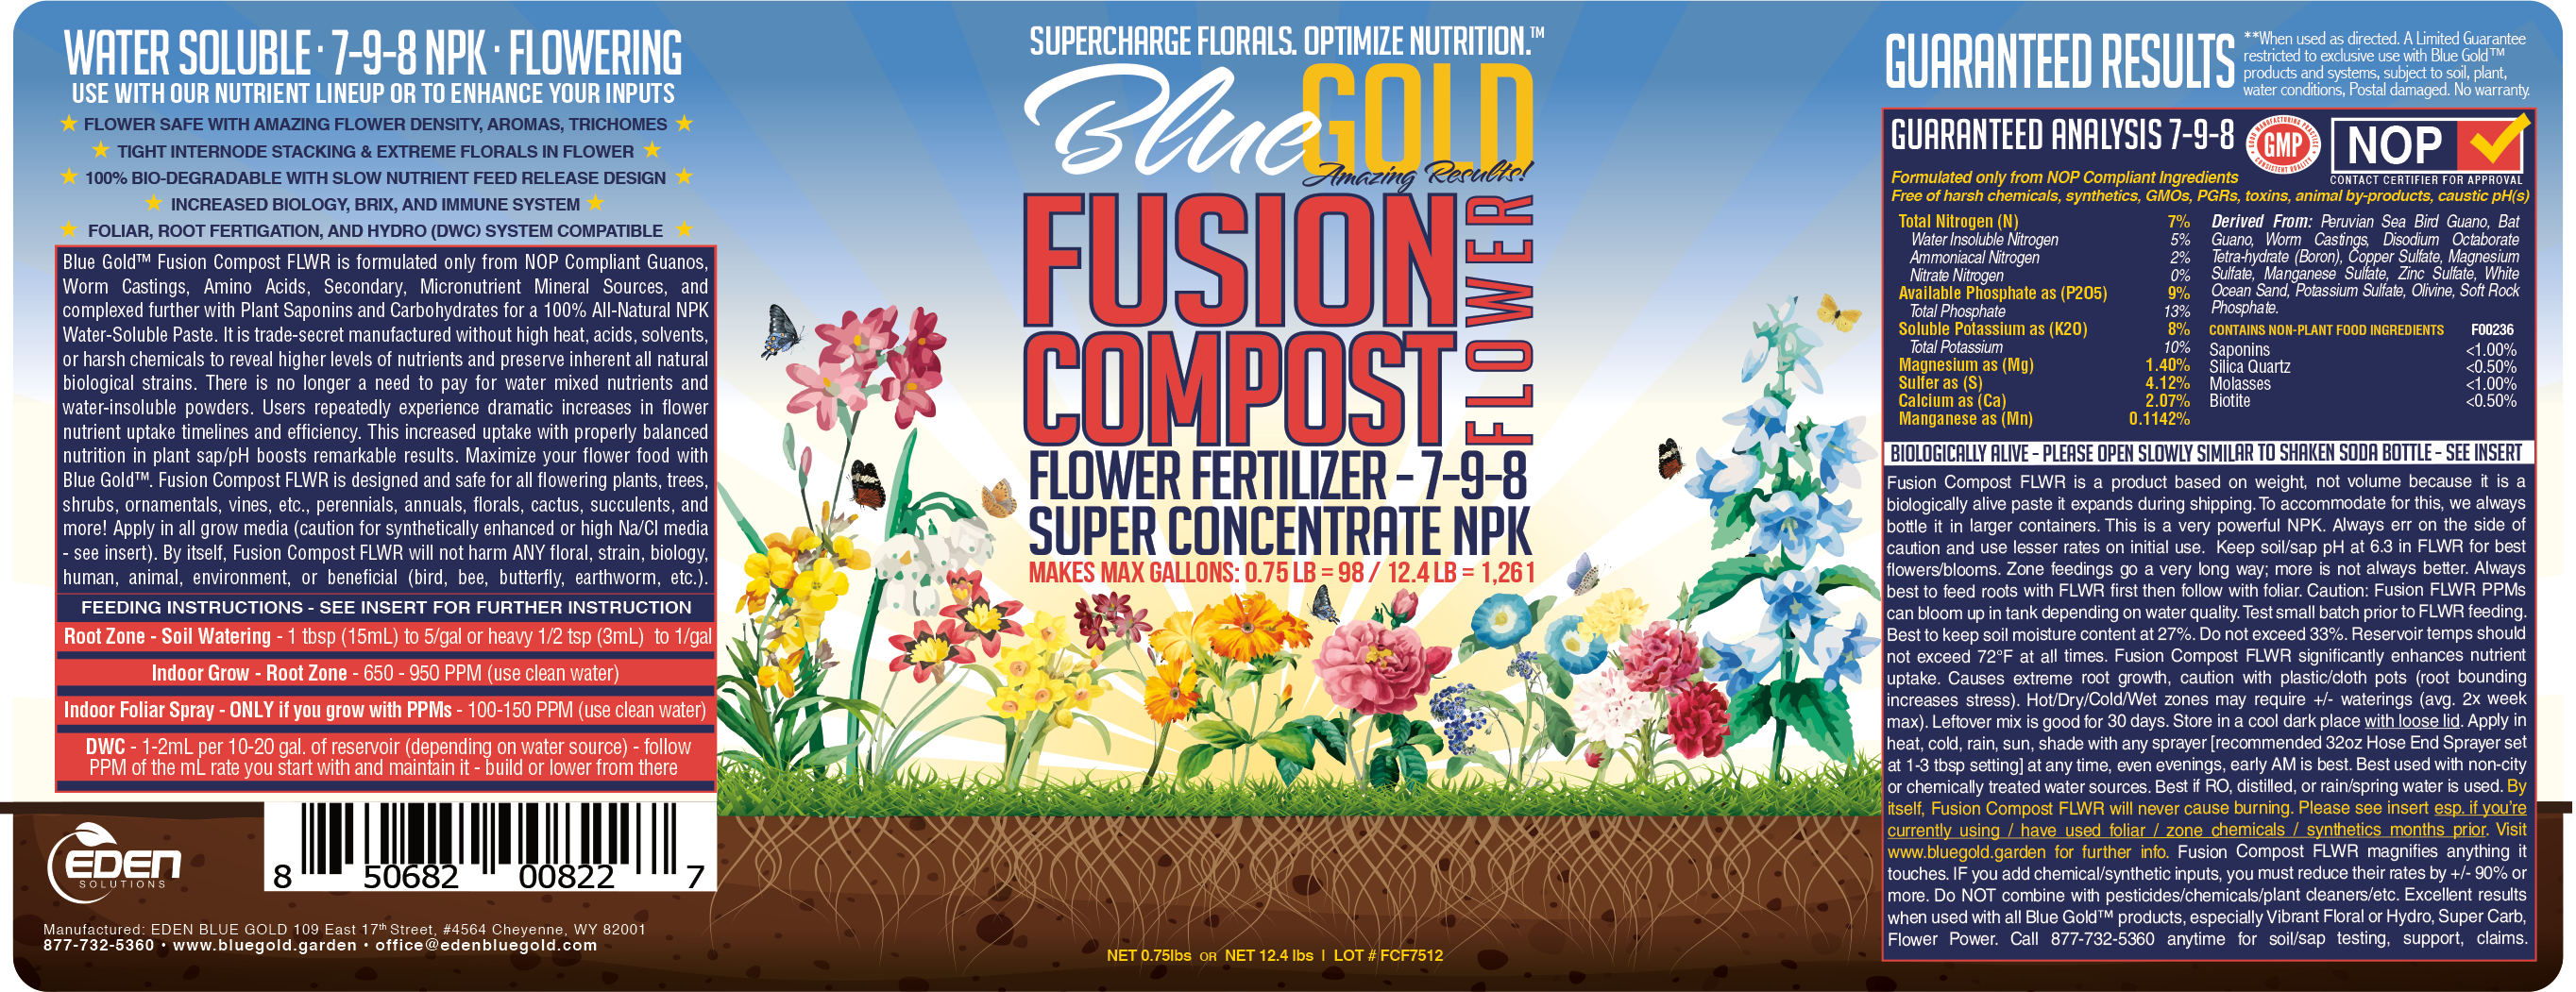 Blue Gold™ Fusion Compost Flower Fertilizer (NPK Fertilizer 7-9-8)